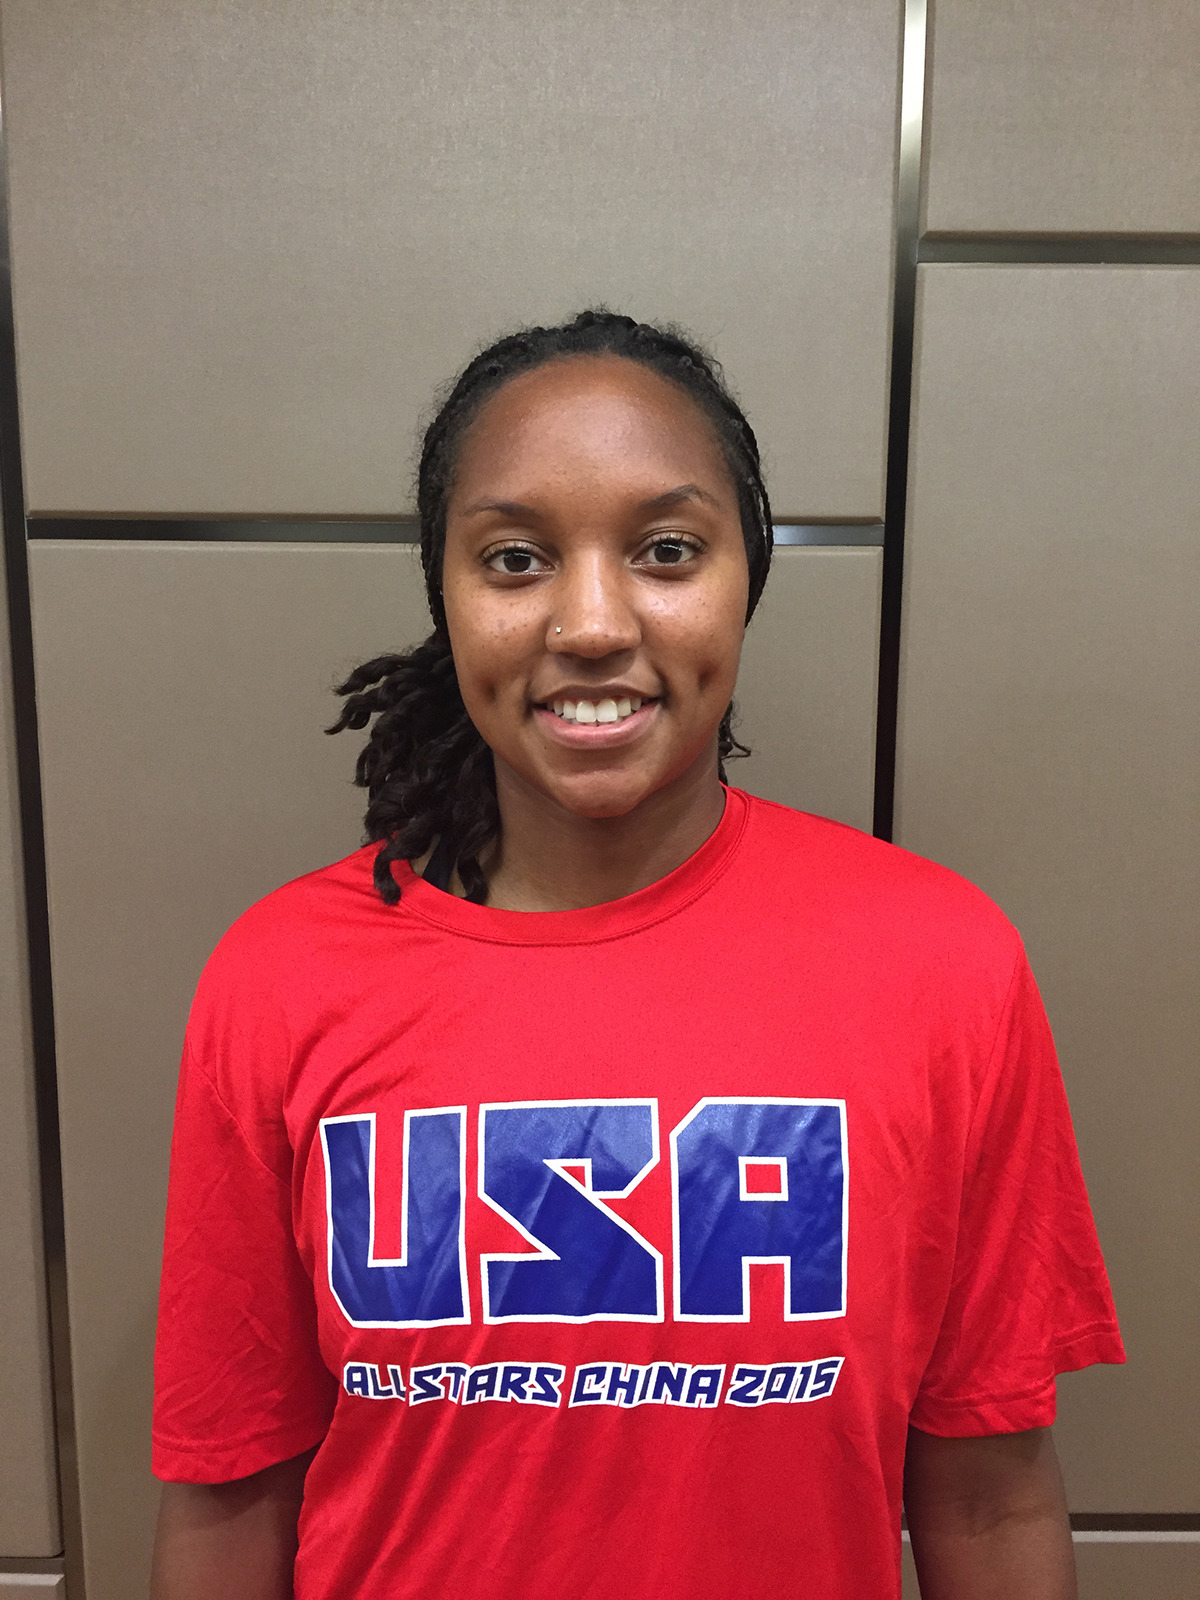 Deanna Weaver portrait for NetScouts USA All-Stars, Photo courtesy of Deanna Weaver.